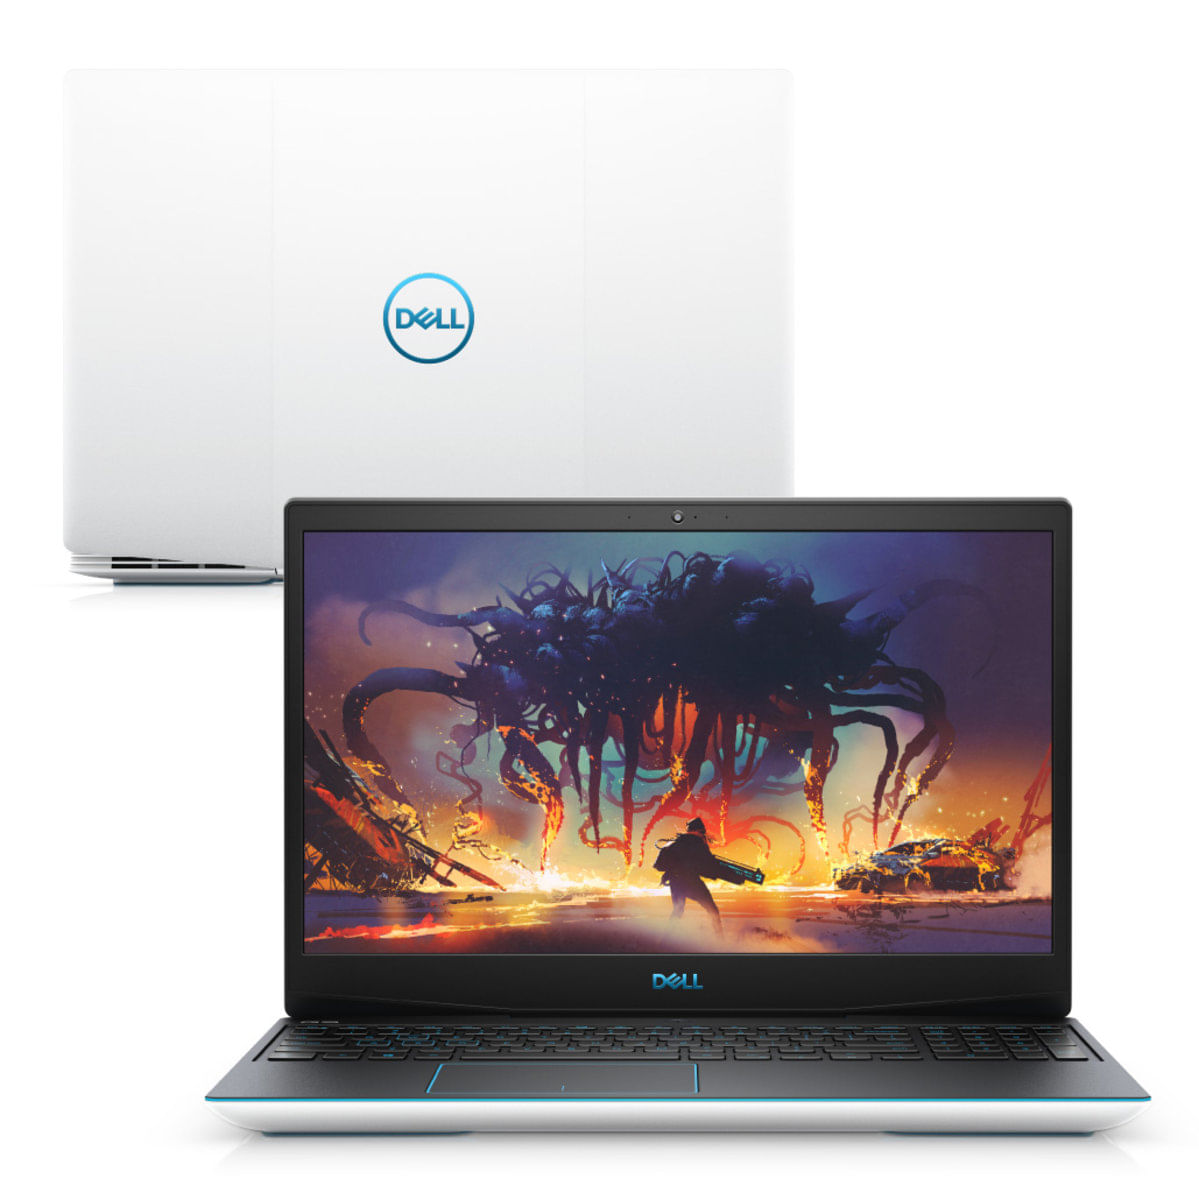 "Notebookgamer - Dell G3-3590-m60b I7-9750h 4.0ghz 8gb 128gb Ssd Geforce Gtx 1660 Ti Windows 10 Home Gaming 15,6"" Polegadas"